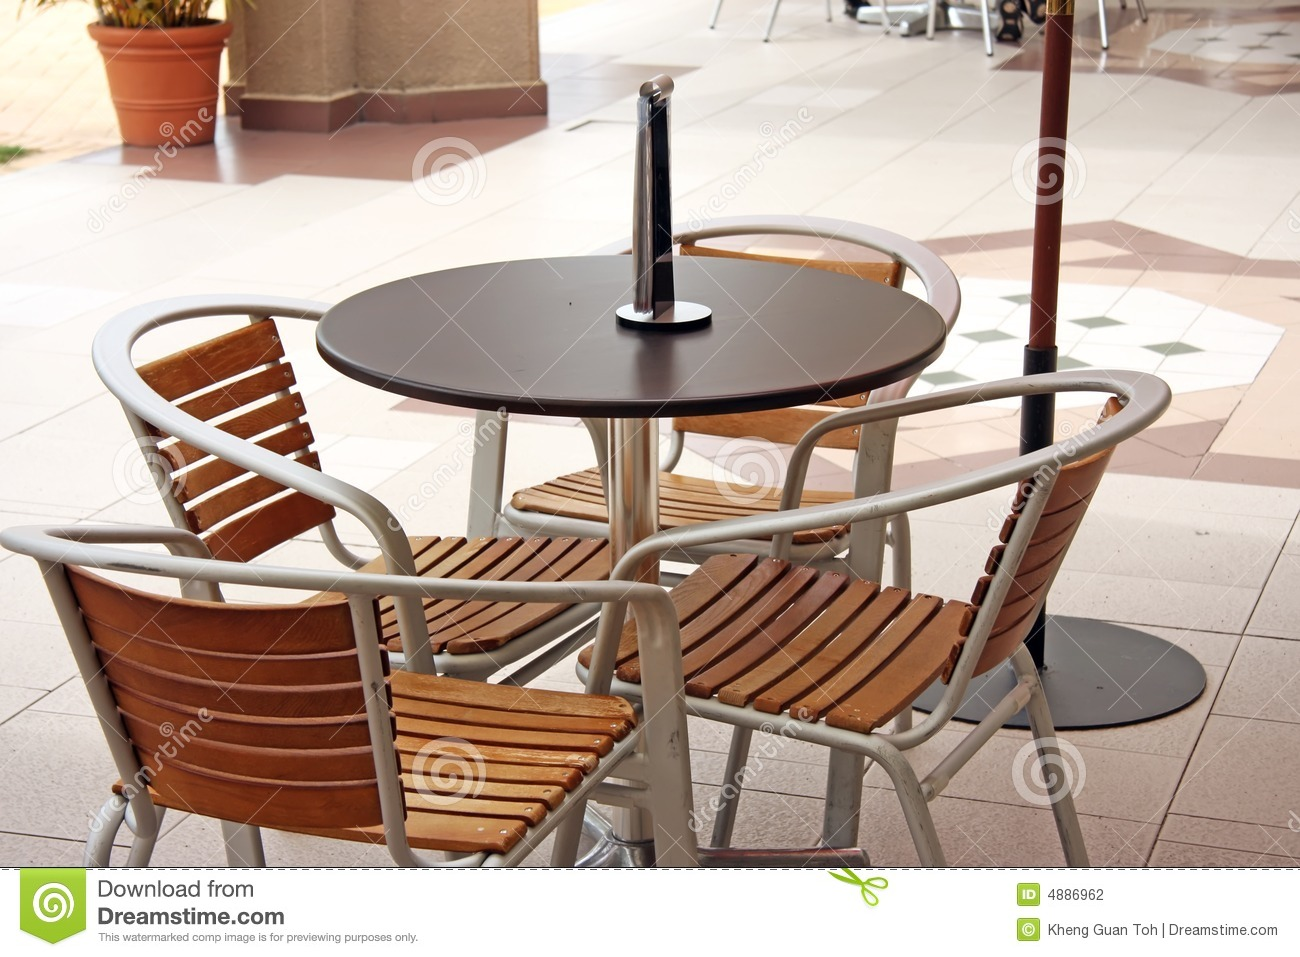 Outdoor cafe chairs - Outdoor Cafe Furniture Stock Photography